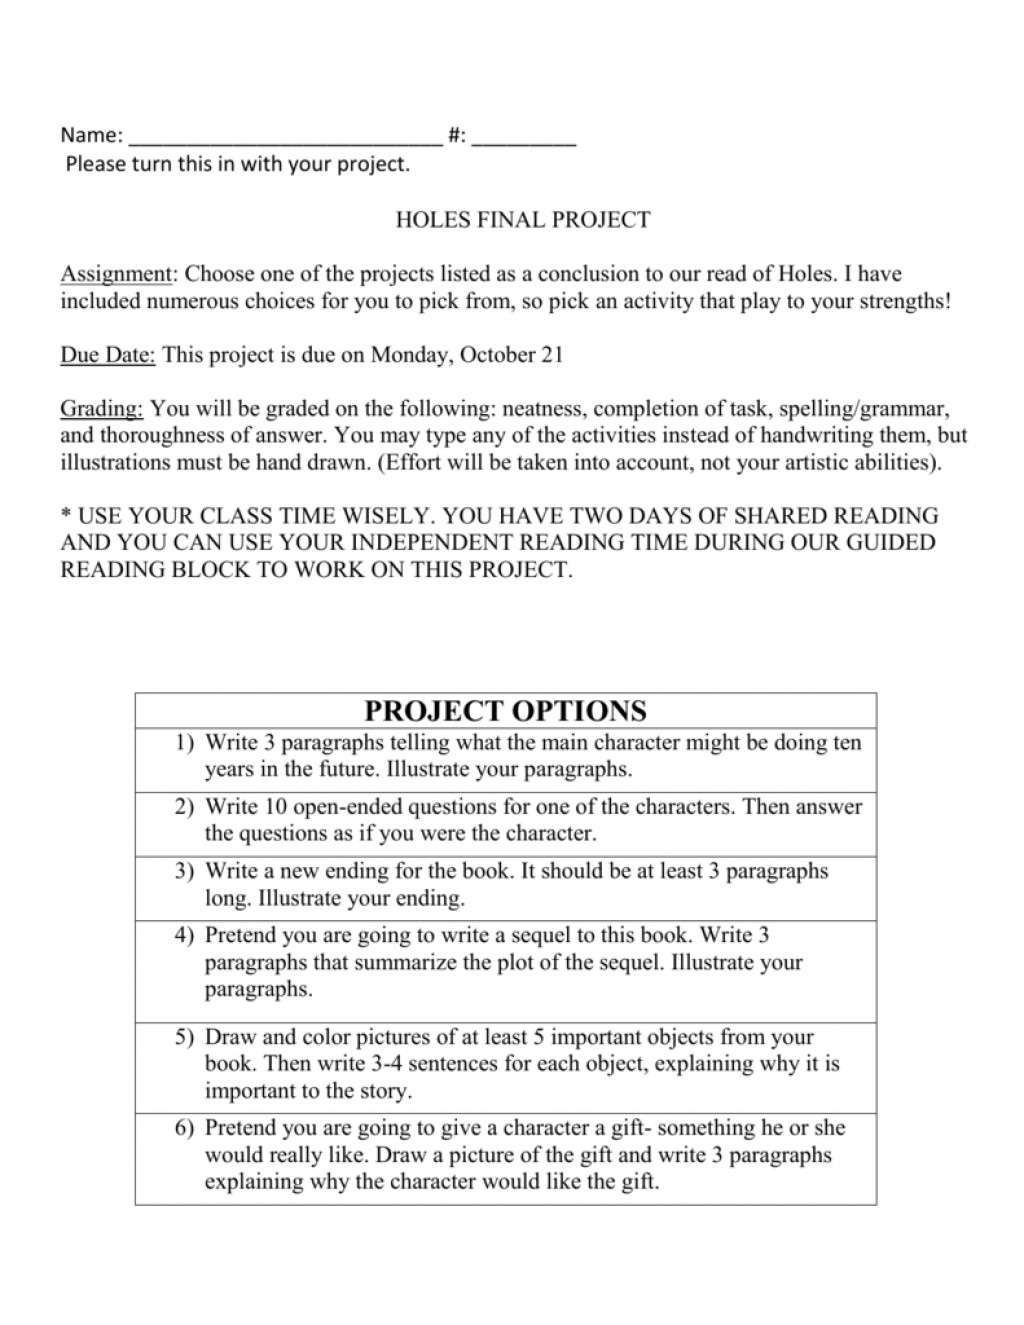 008 Essay Example Holes Conclusion 006929522 2 Breathtaking Black Large